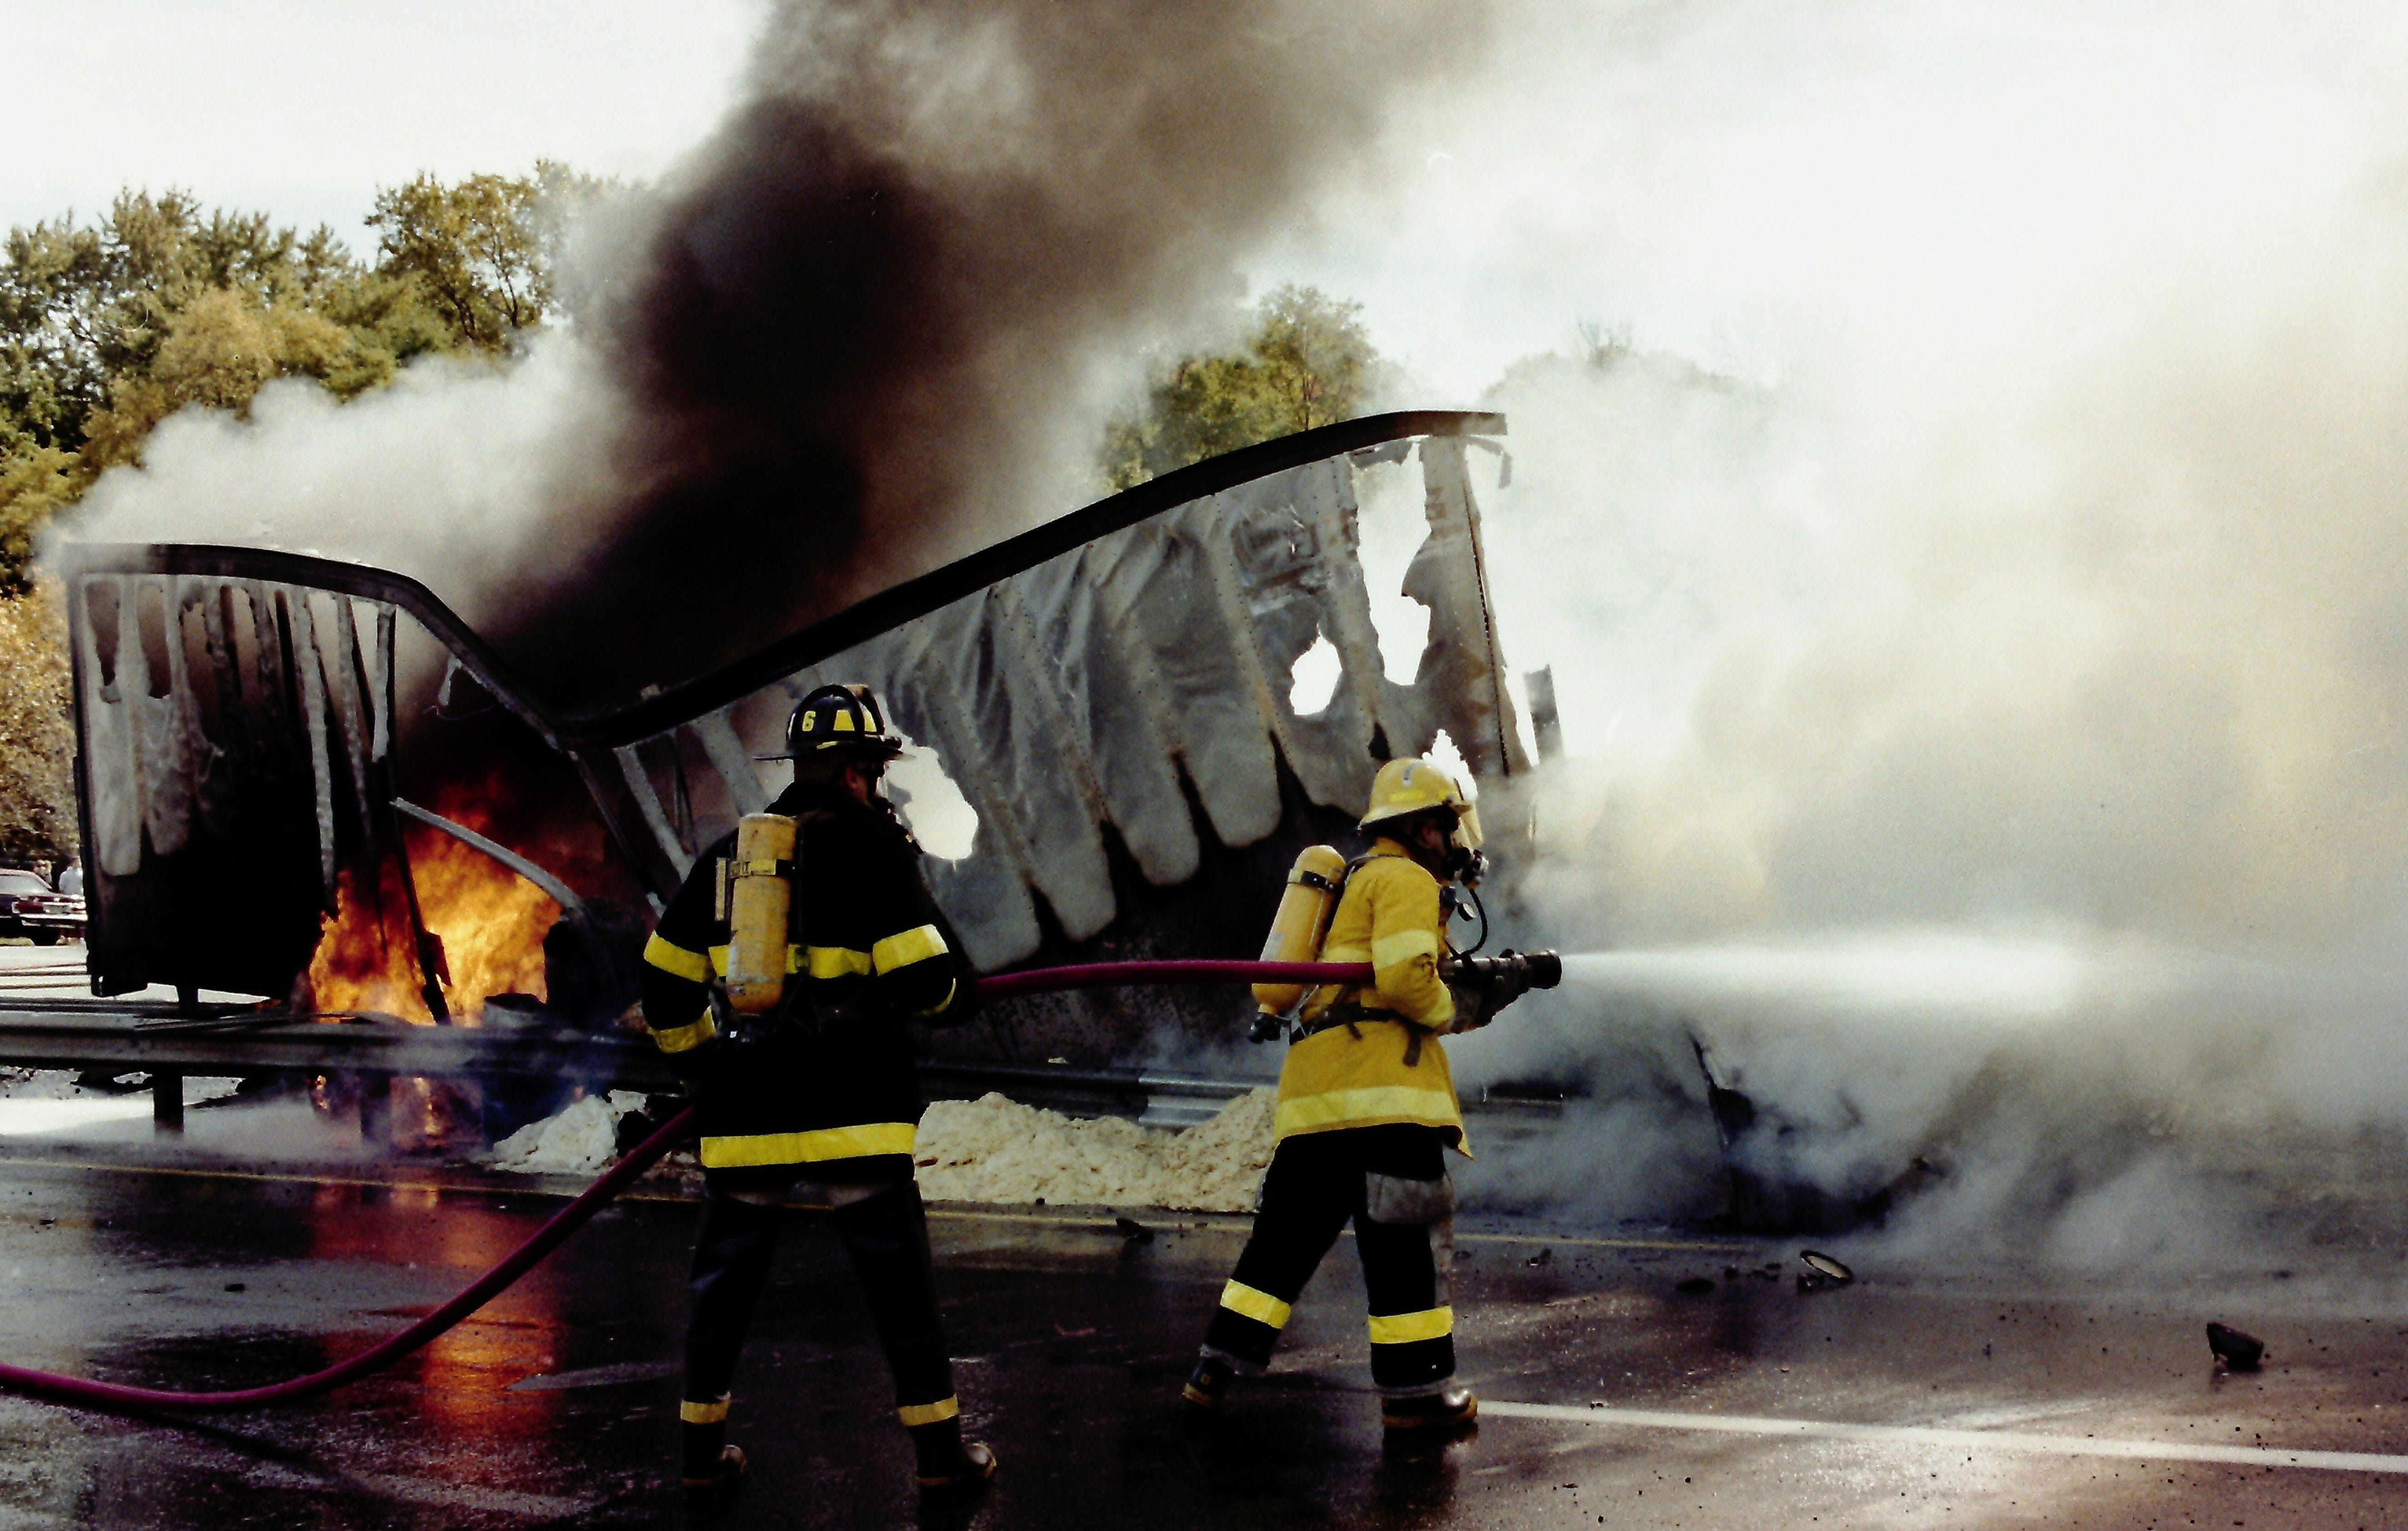 Tractor-trailer crashes, burns in 1992 on I-287